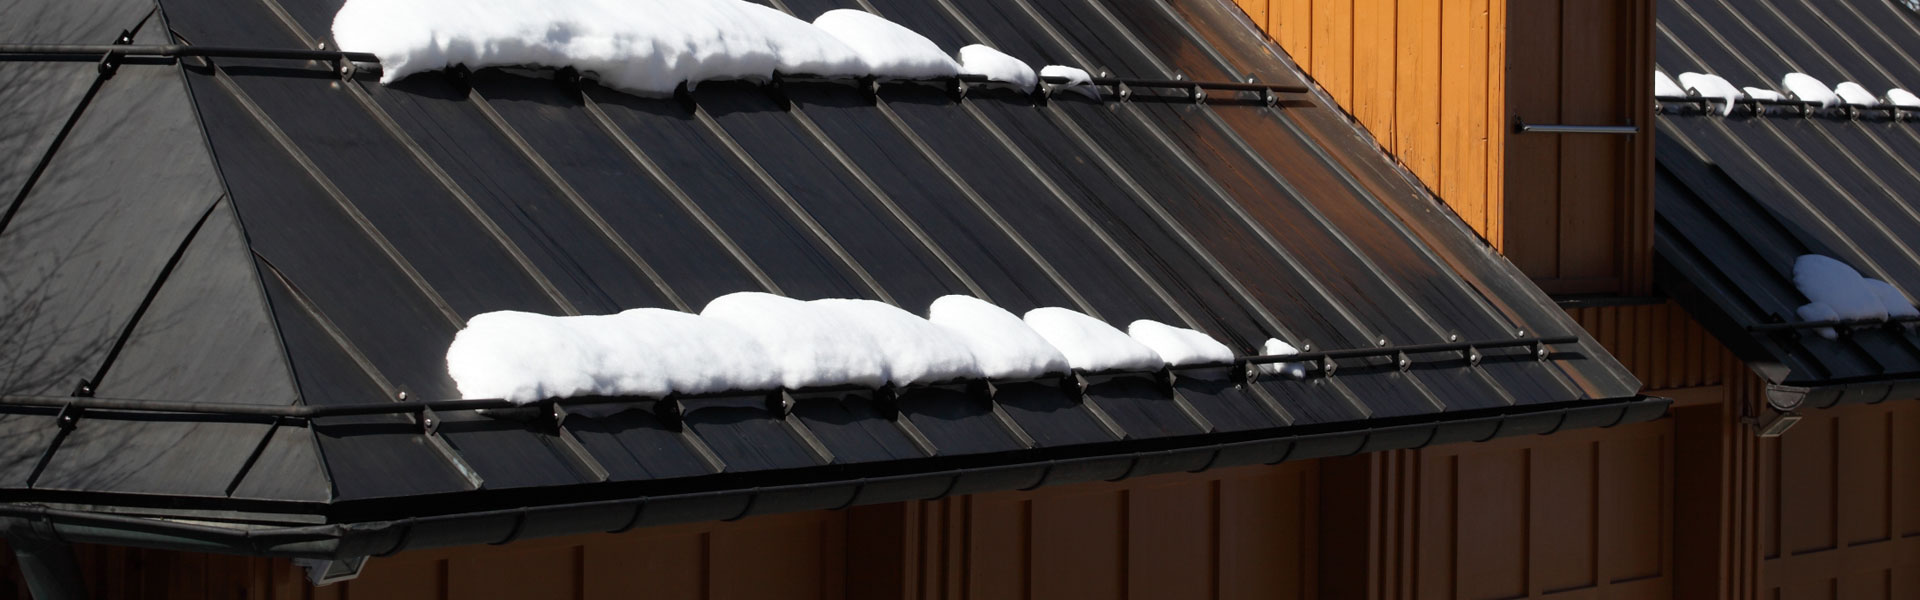 residential commercial metal roofing contractor london ontario